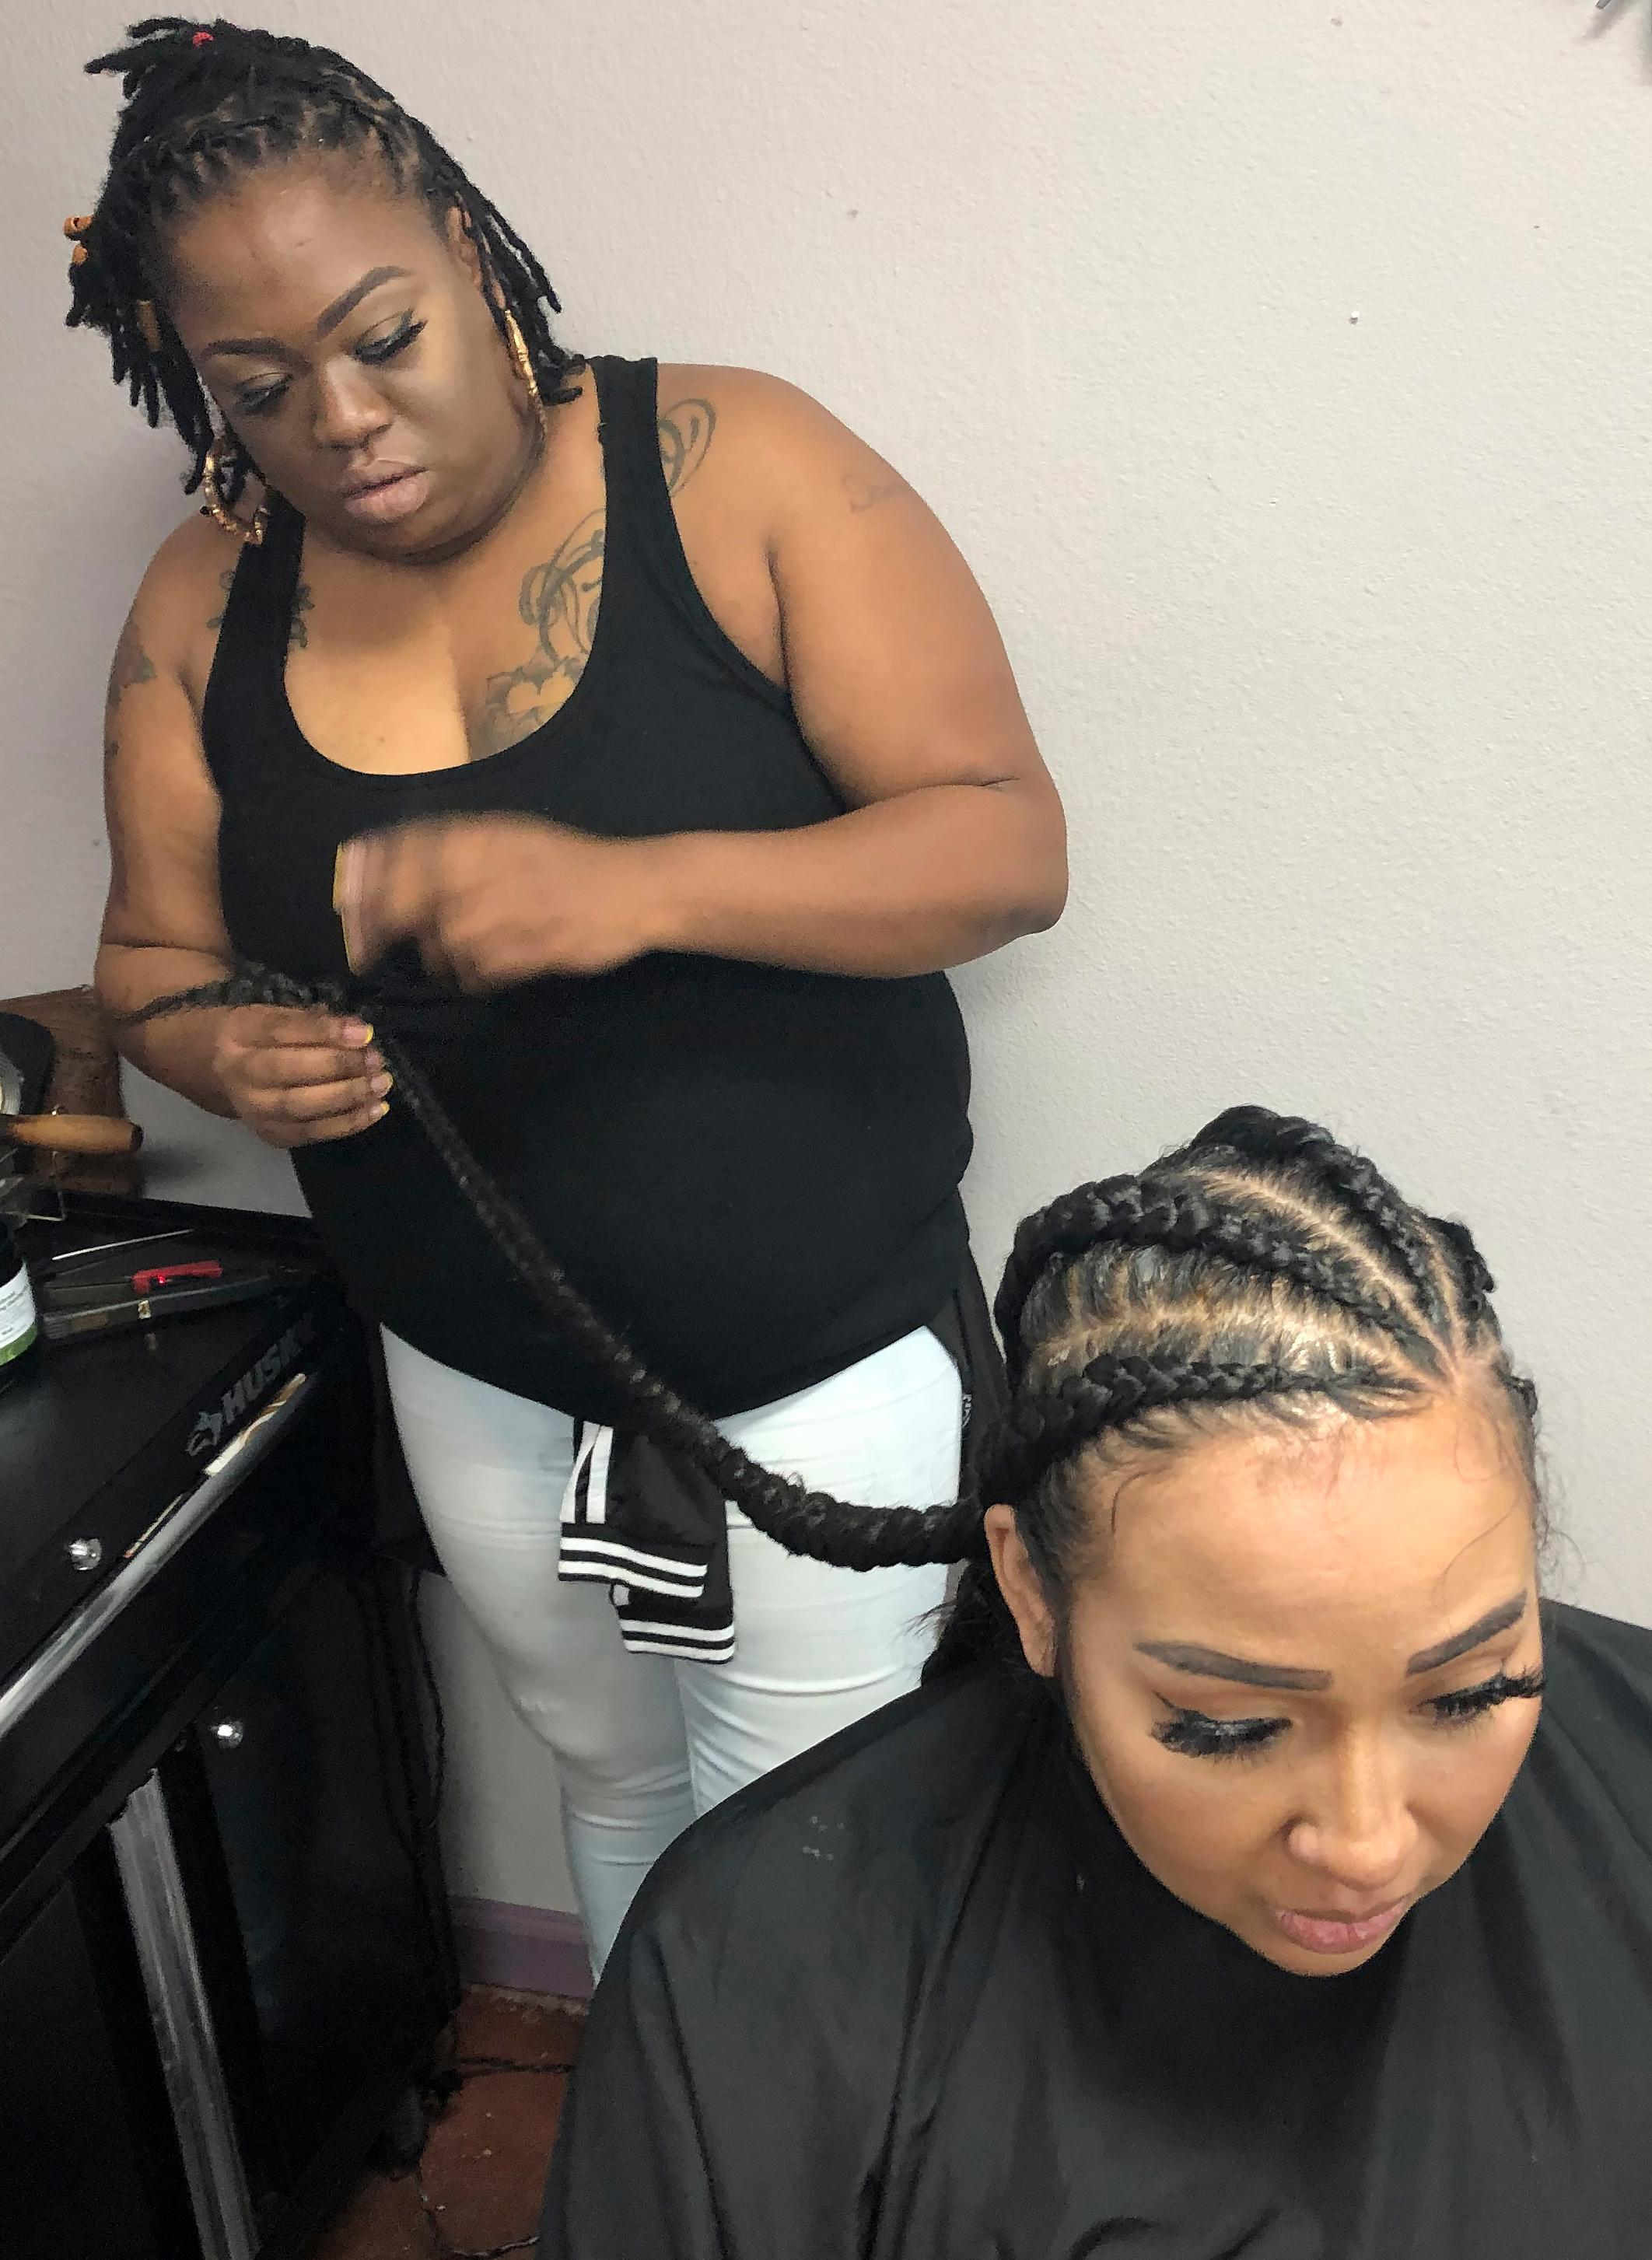 Elicia Drayton, left, braids the hair of Shereen Africa at Exquisite U hair salon in Sacramento, Calif., Wednesday, July 3, 2019. California is the first state to ban job and school discrimination against people for wearing natural hair styles such as braids. Gov. Gavin Newsom, a Democrat, signed the legislation Wednesday. (AP photo/Kathleen Ronayne)